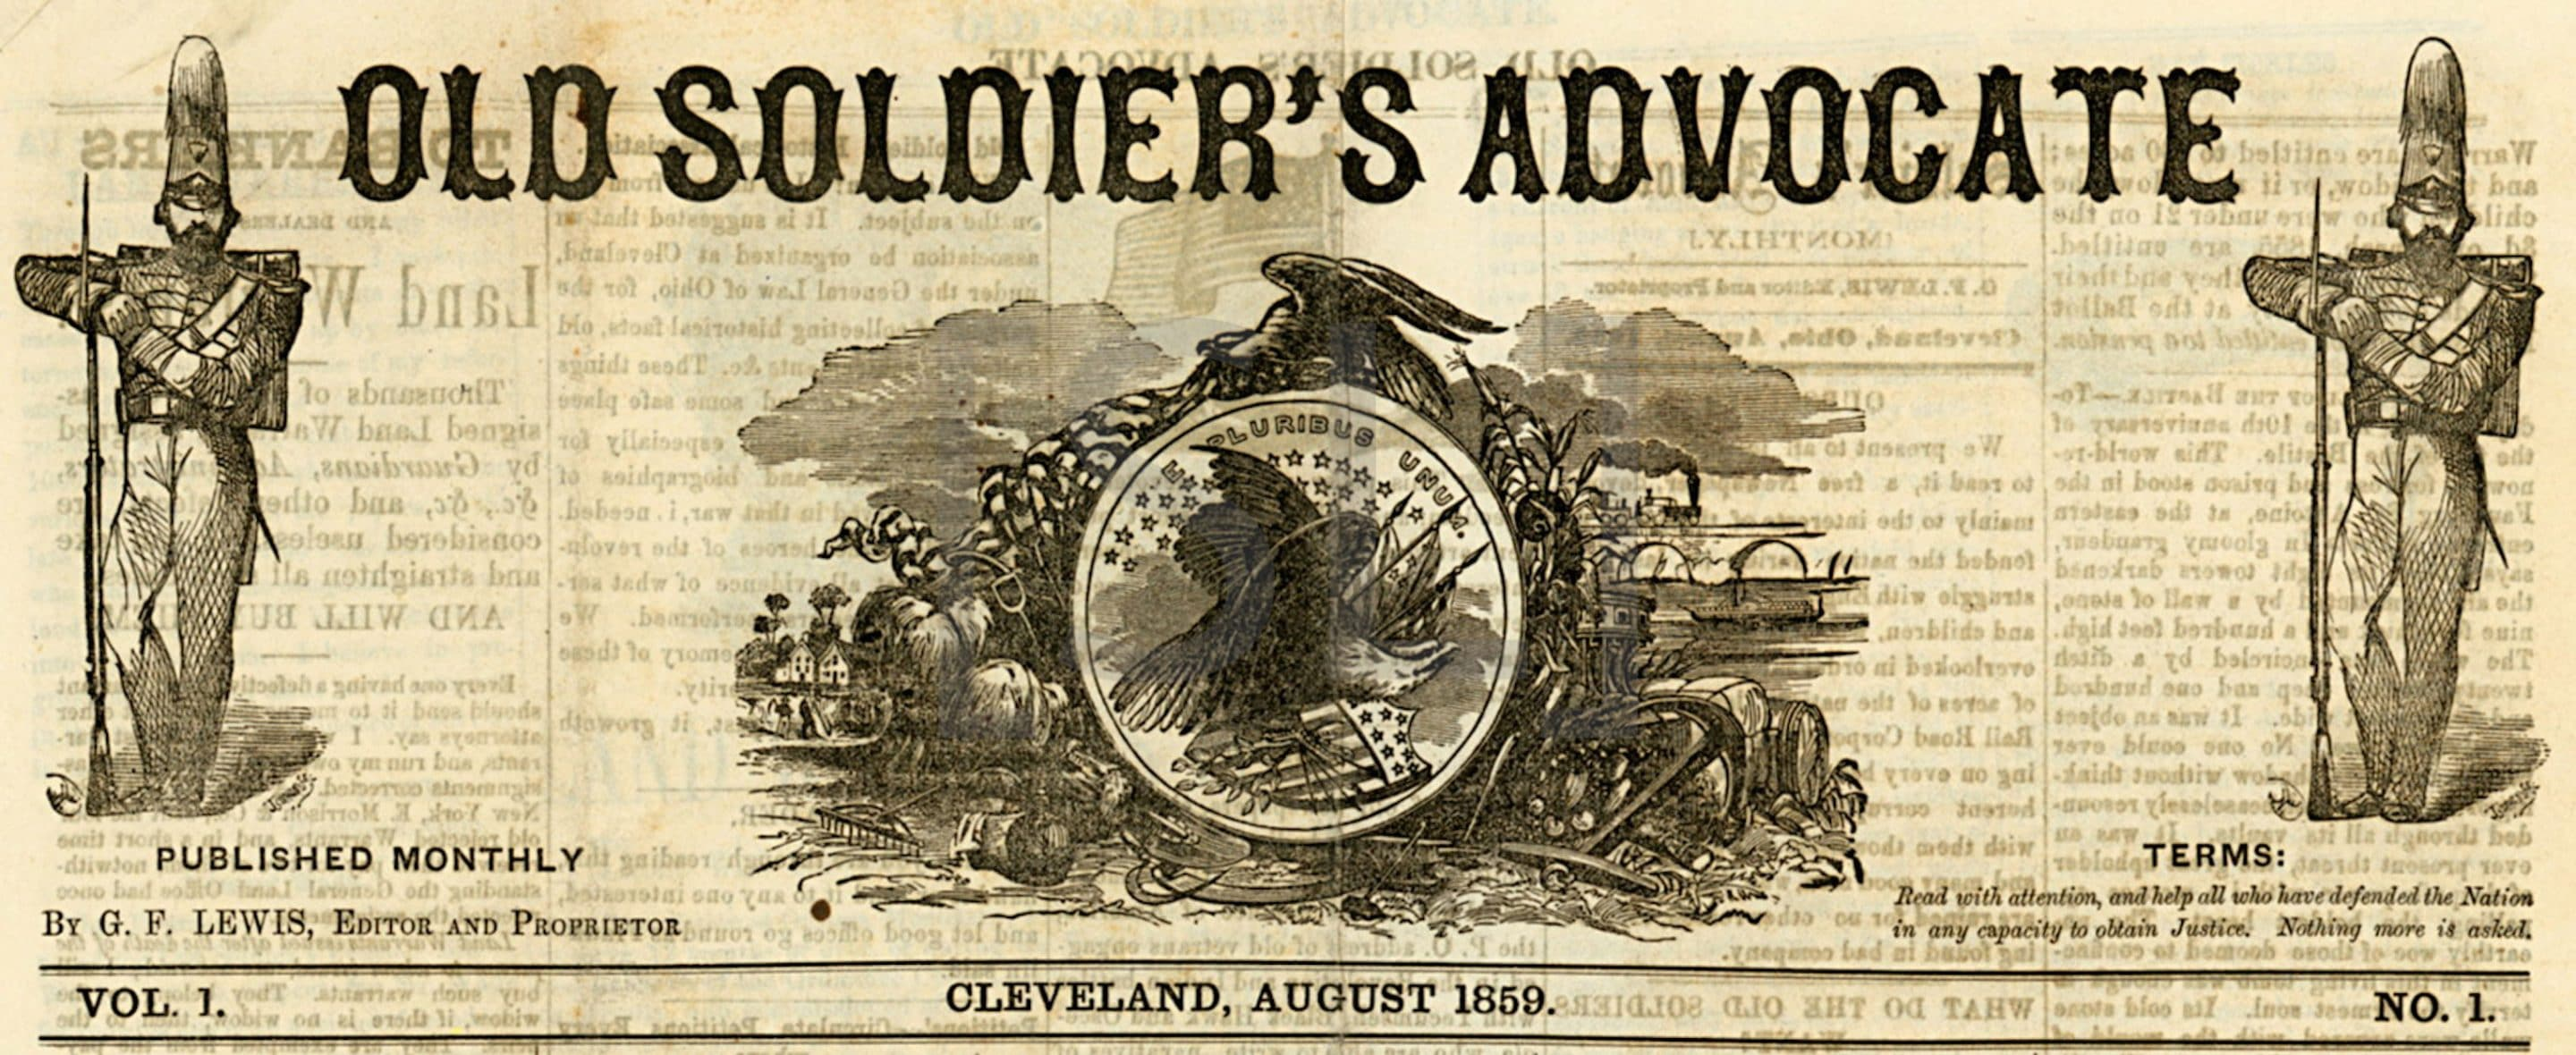 Old Soldier's Advocate